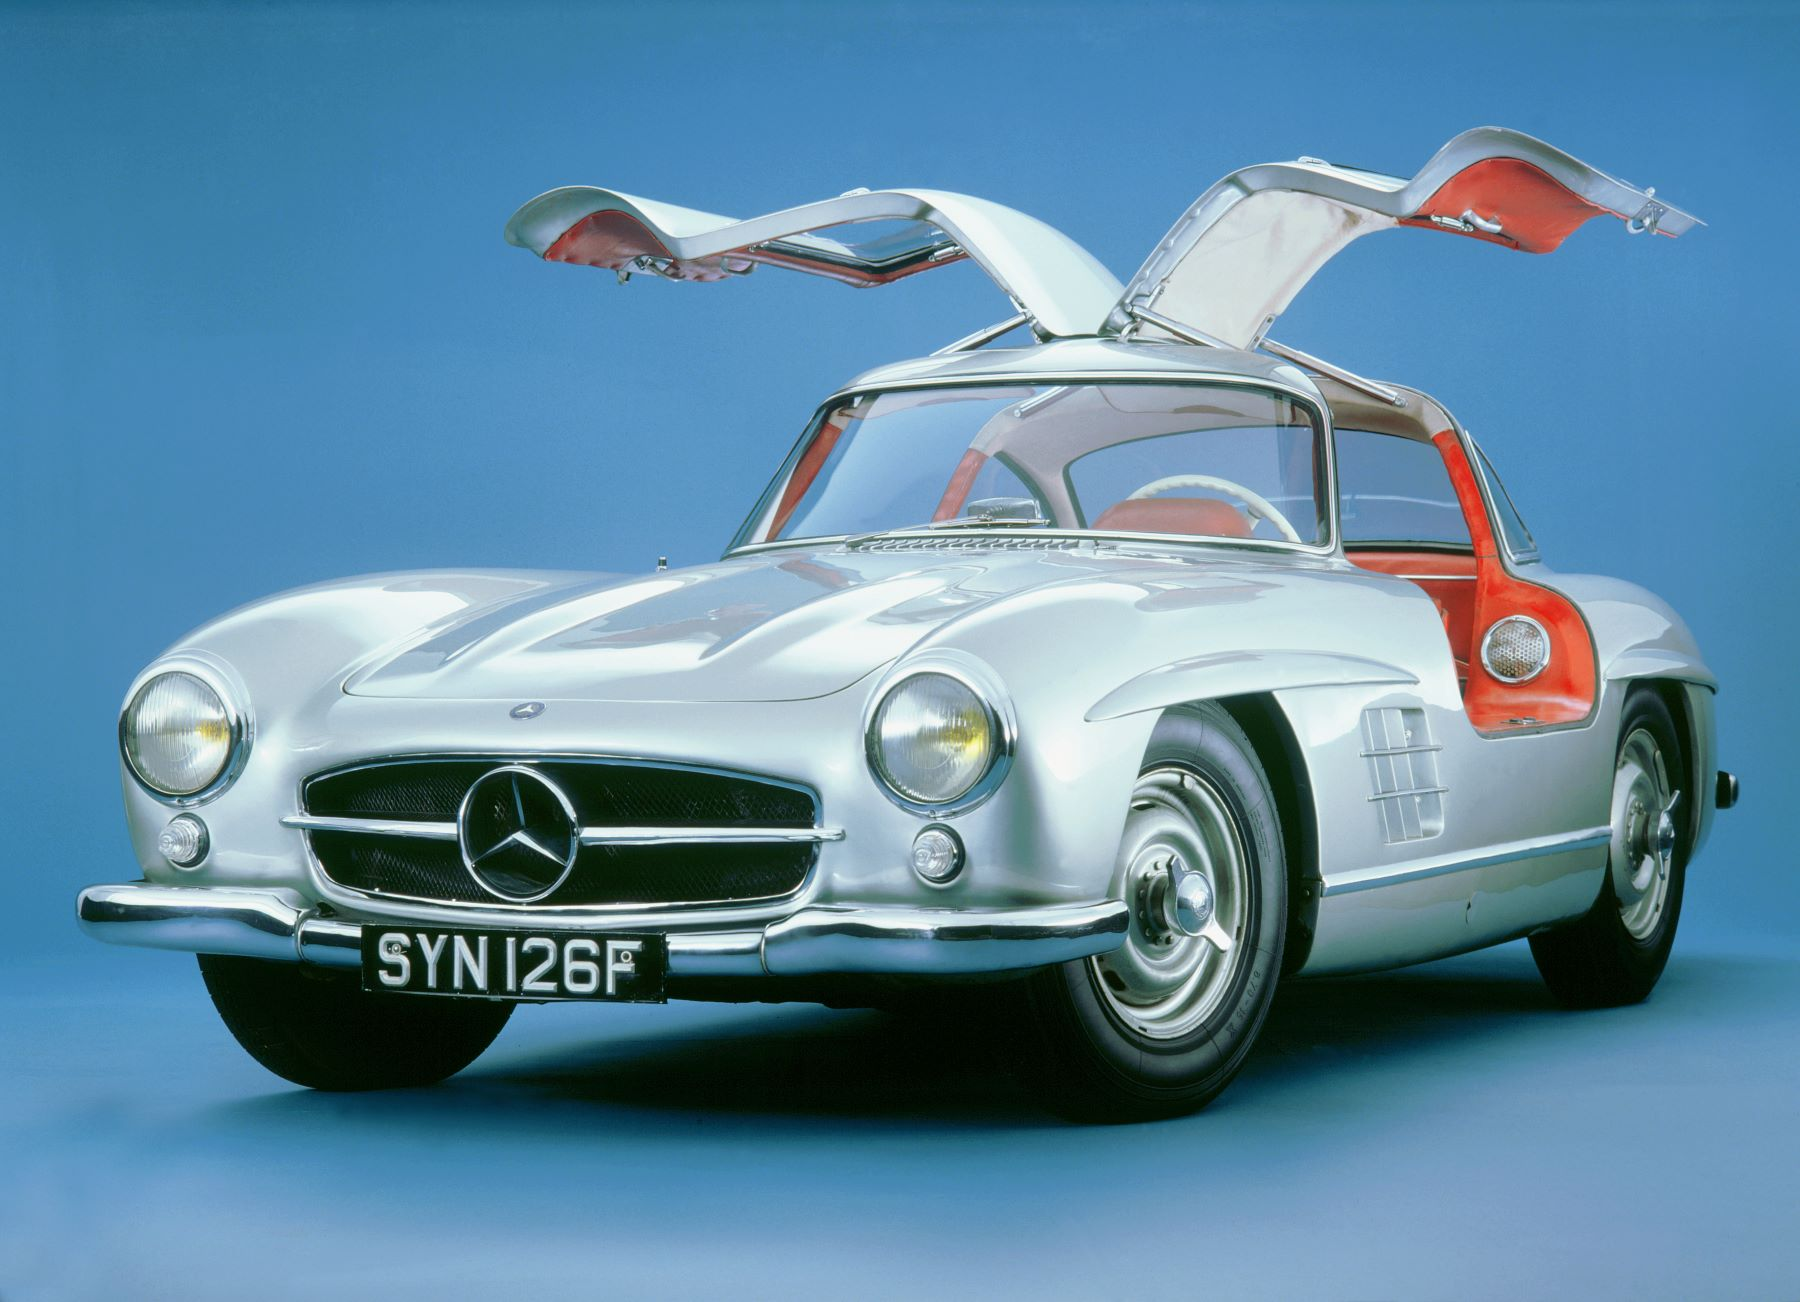 A 1957 Mercedes-Benz 300SL model with gull-wing doors